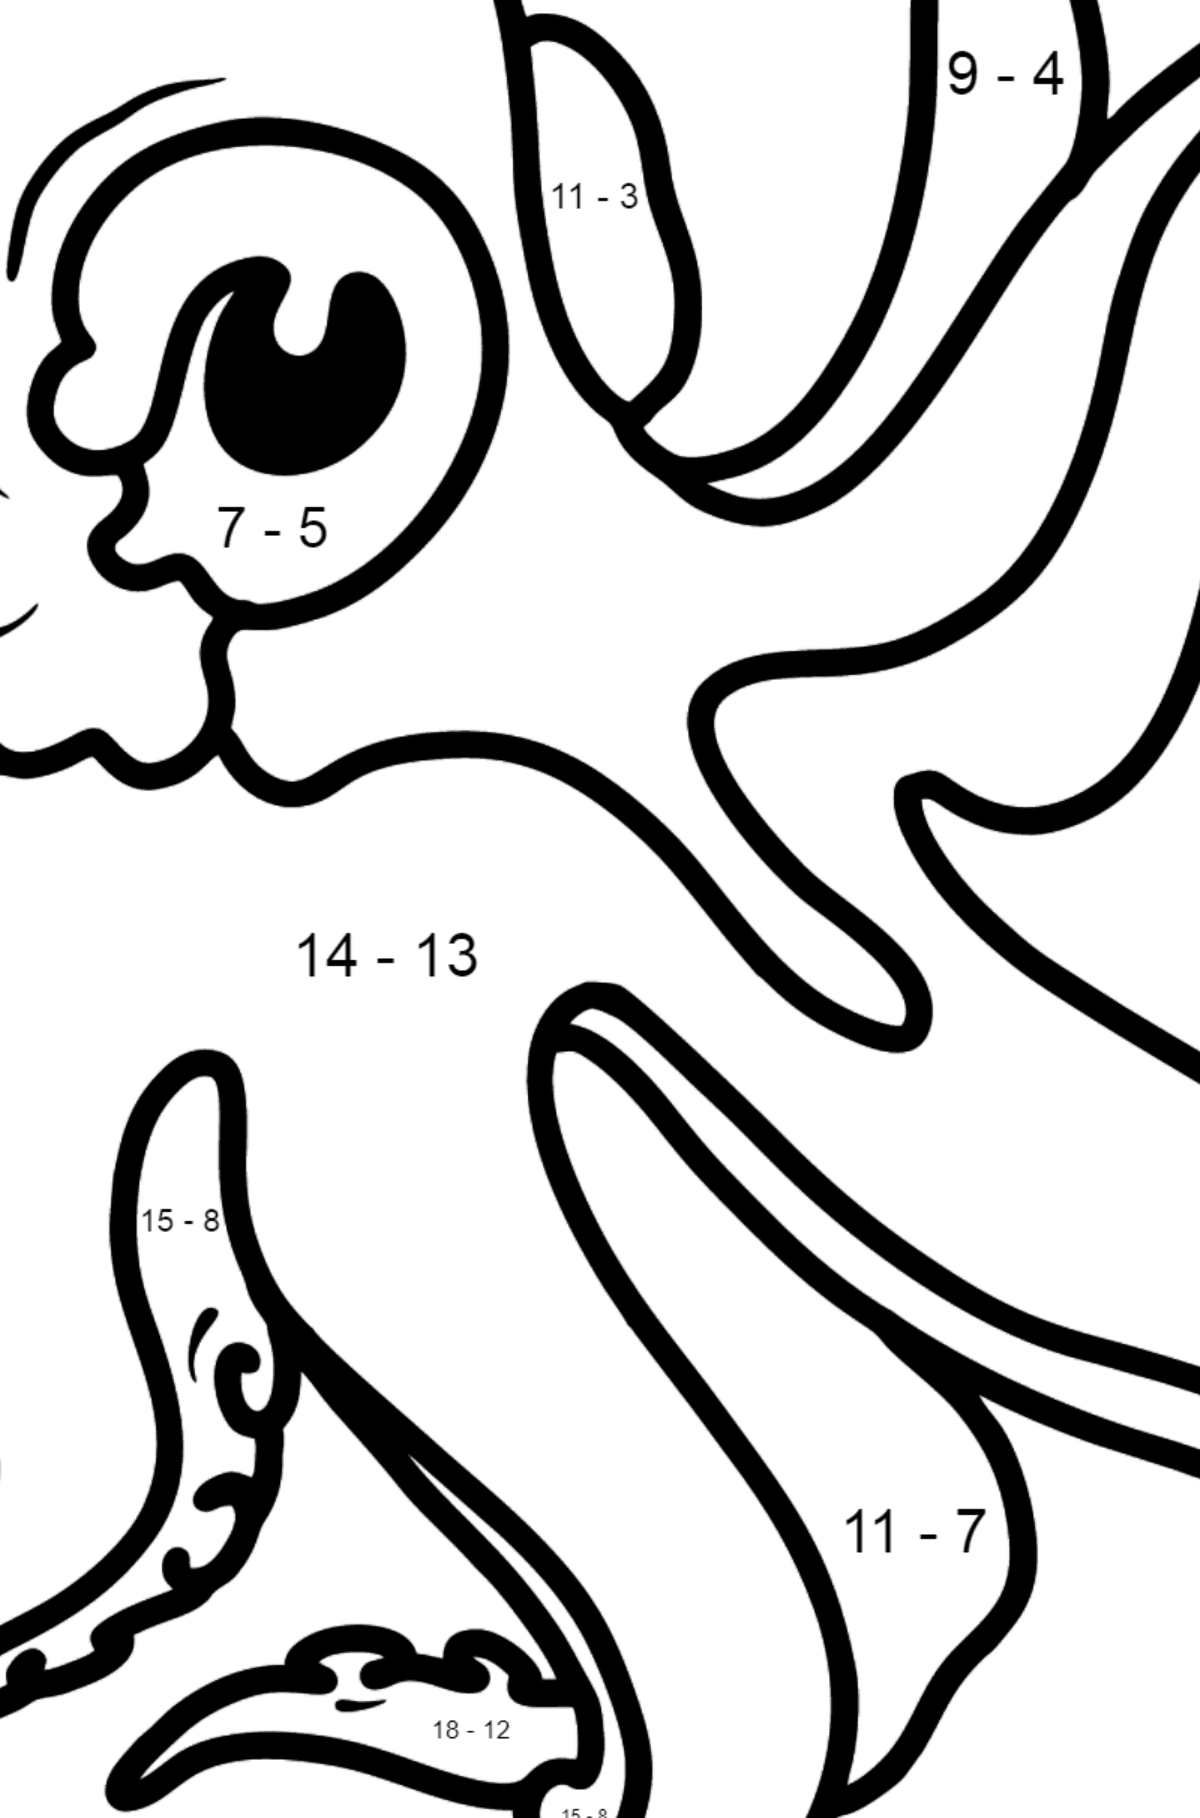 Octopus coloring page - Math Coloring - Subtraction for Kids